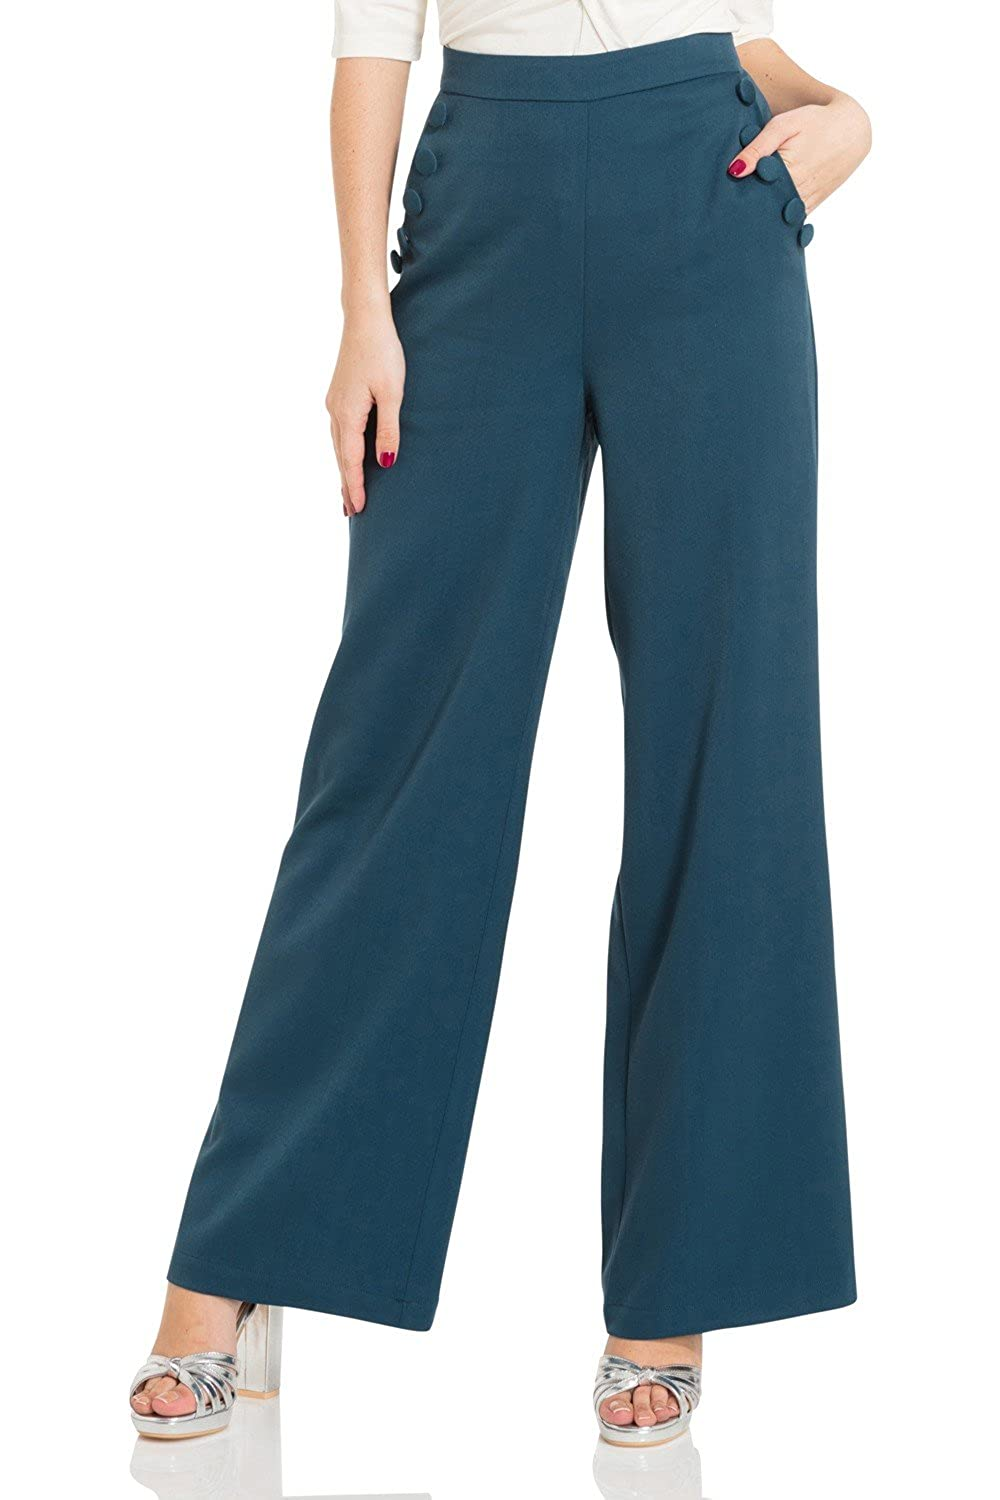 1950s Pants & Jeans- High Waist, Wide Leg, Capri, Pedal Pushers Voodoo Vixen Sara Retro 40s 50s Vintage High Waist Wide Leg Trousers £34.99 AT vintagedancer.com